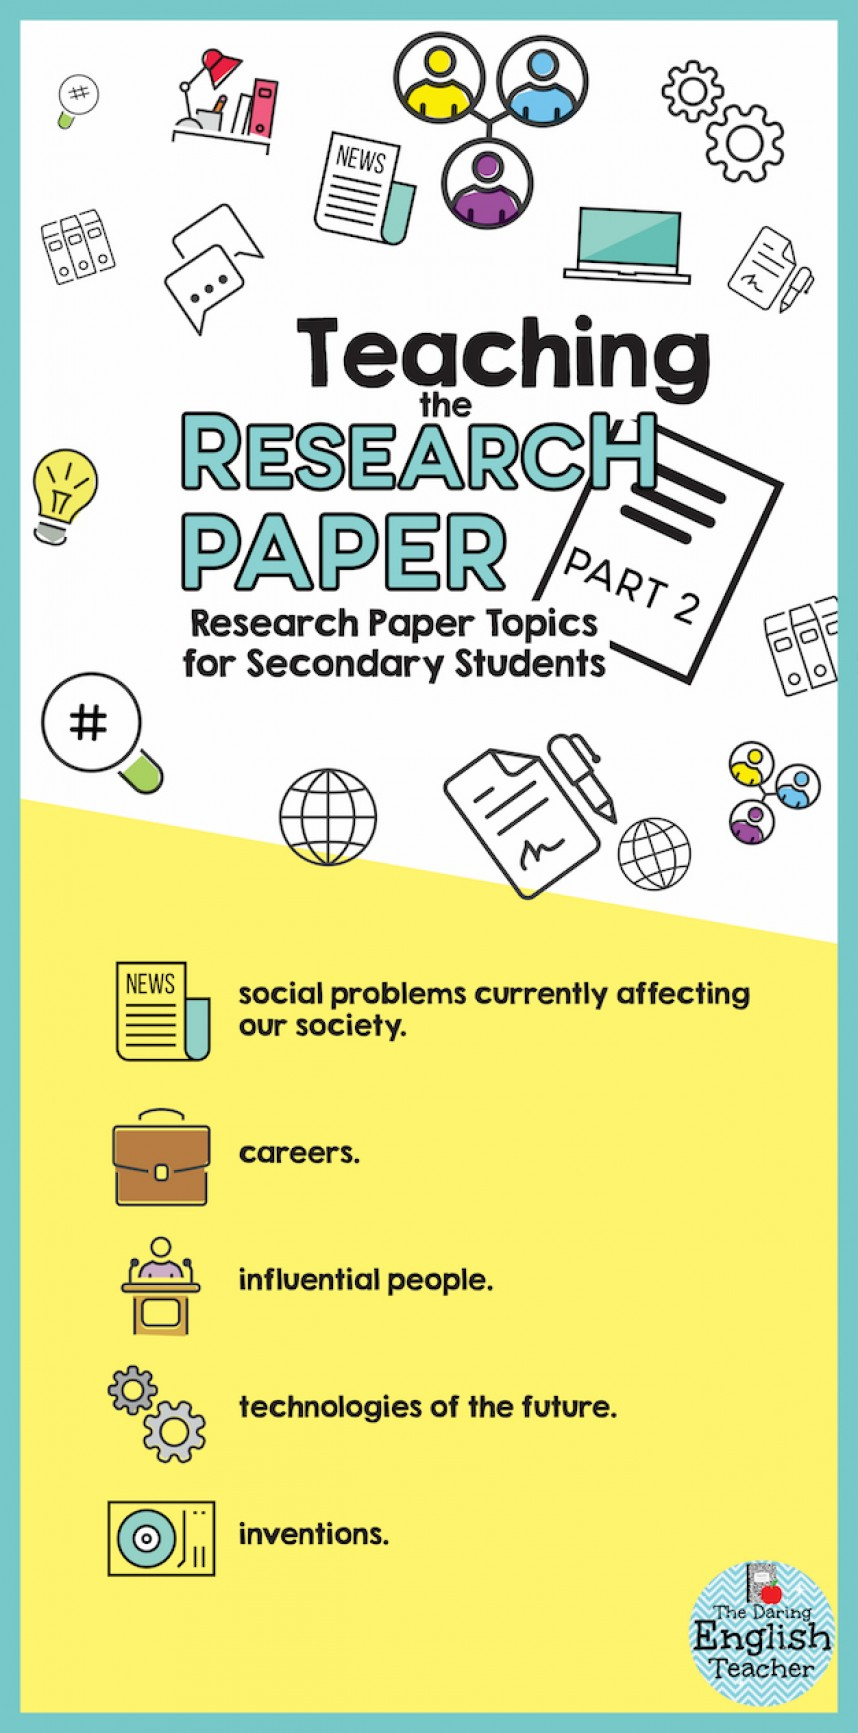 009 Infographic2bp22b2 High School Research Paper Astounding Topics 2017 Science For Students 868